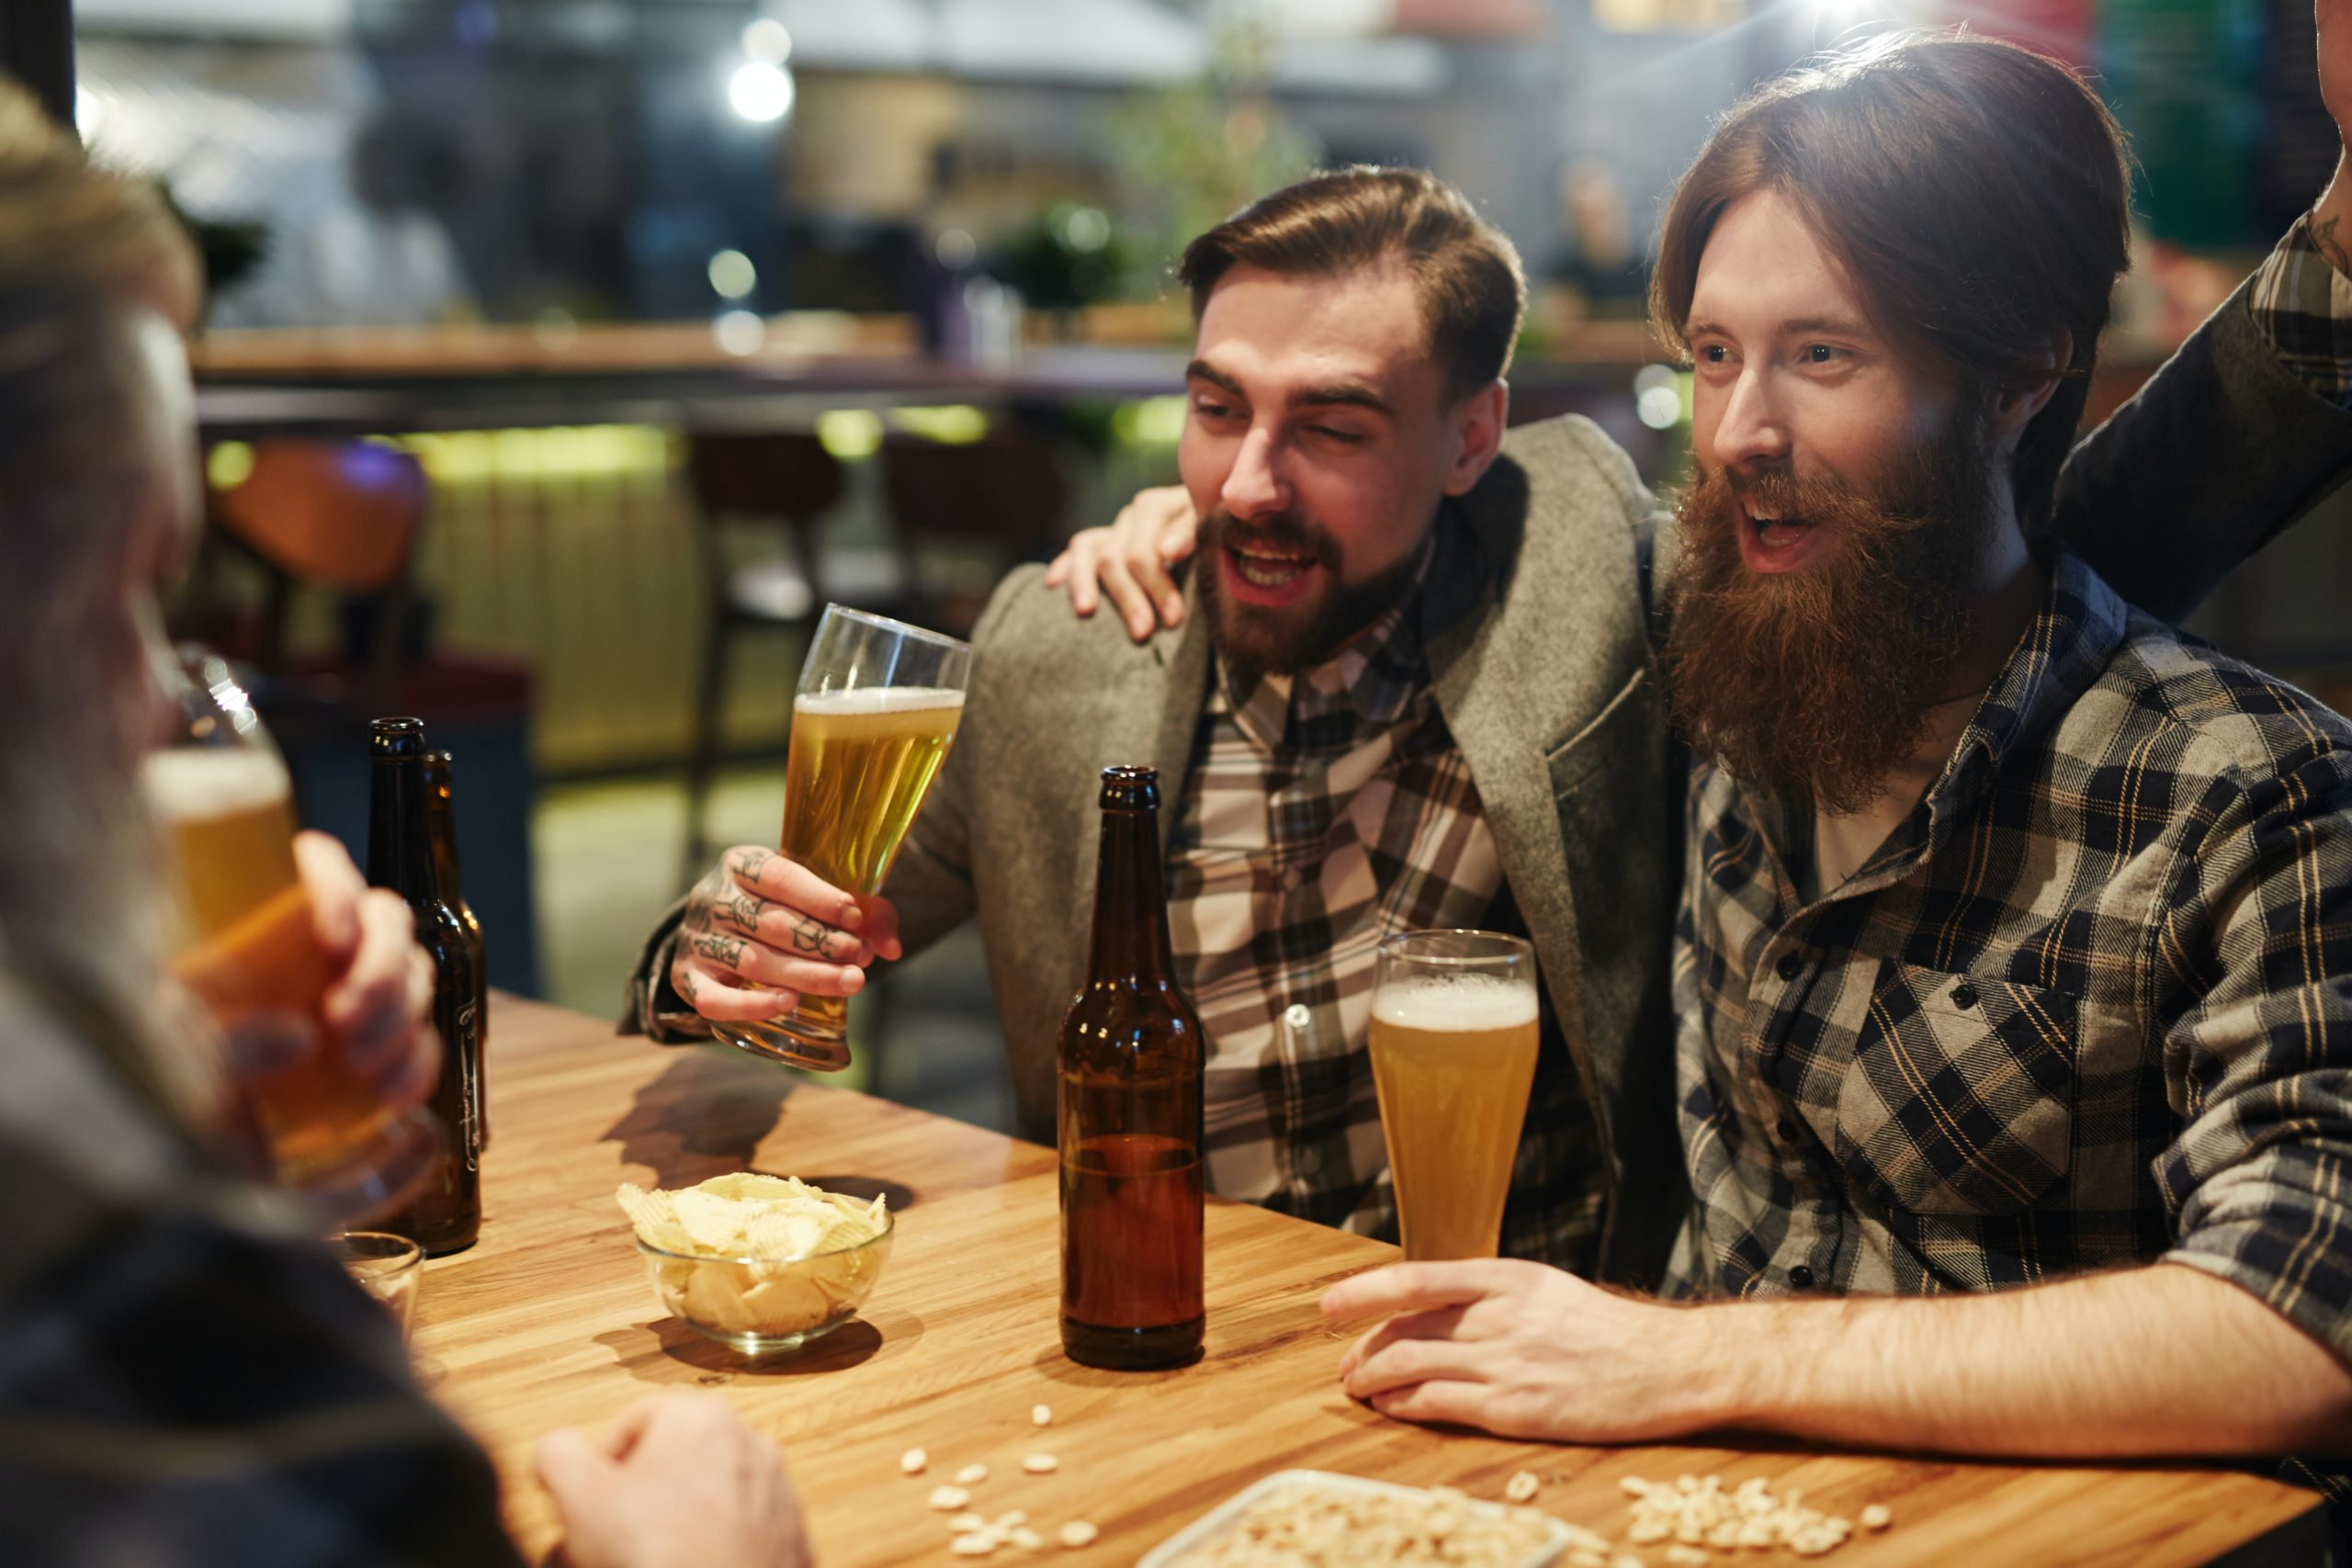 man with mustache and man with beard having a good time at a table drinking beer